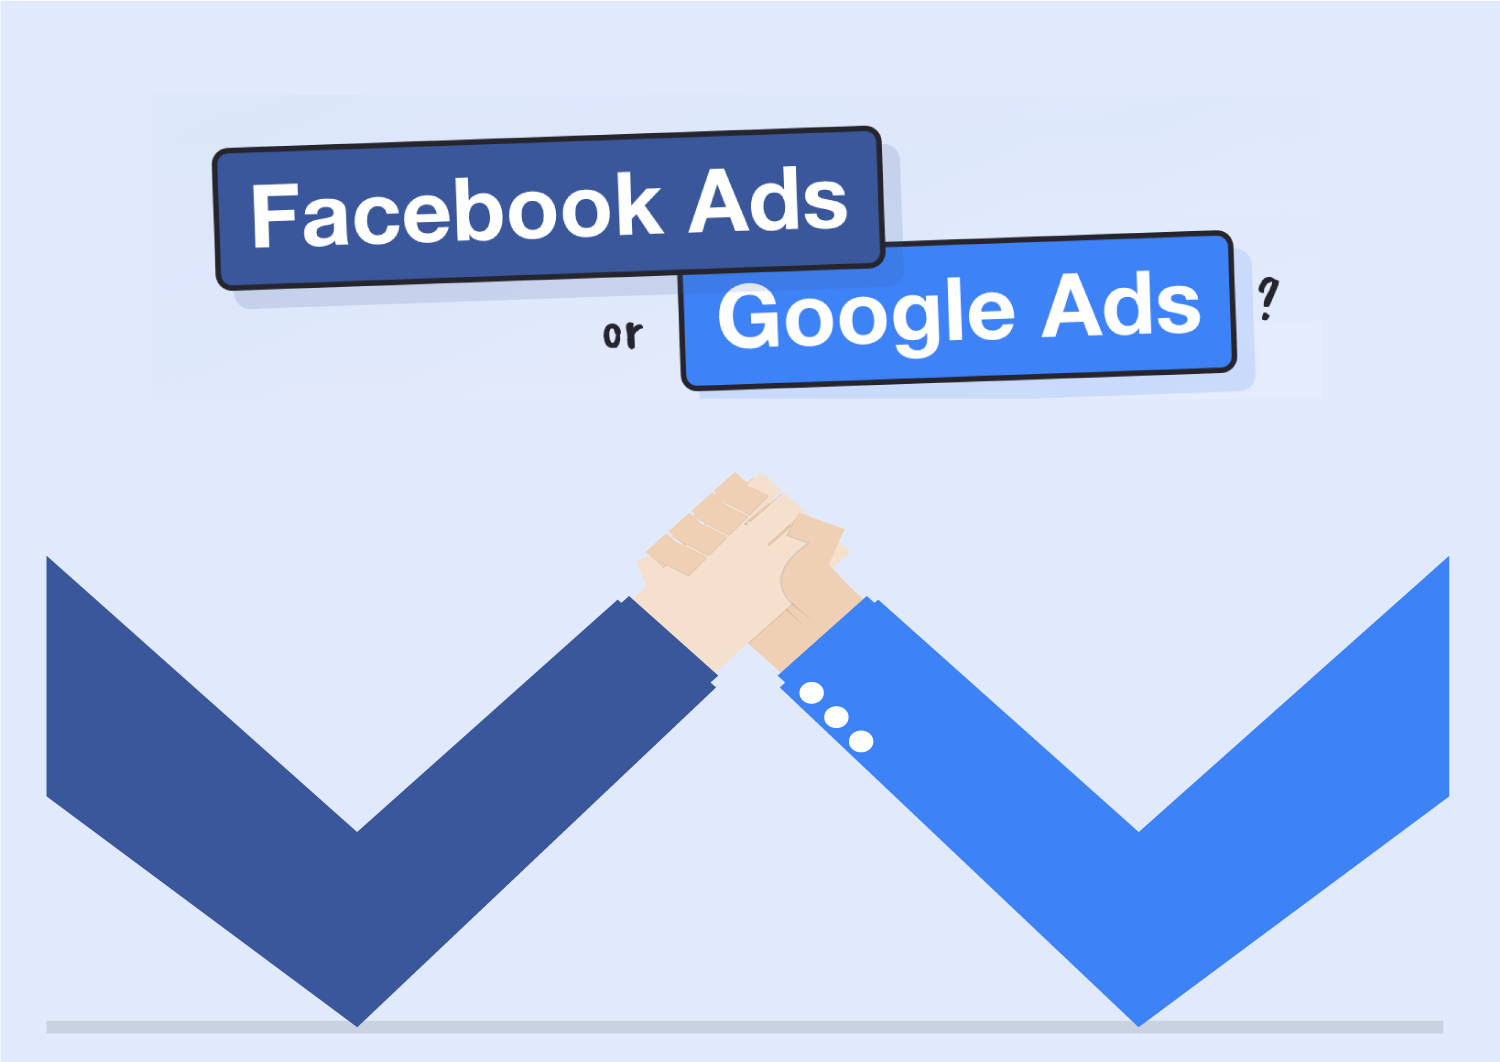 Google Ads vs  Facebook Ads: What's the best choice for your business?